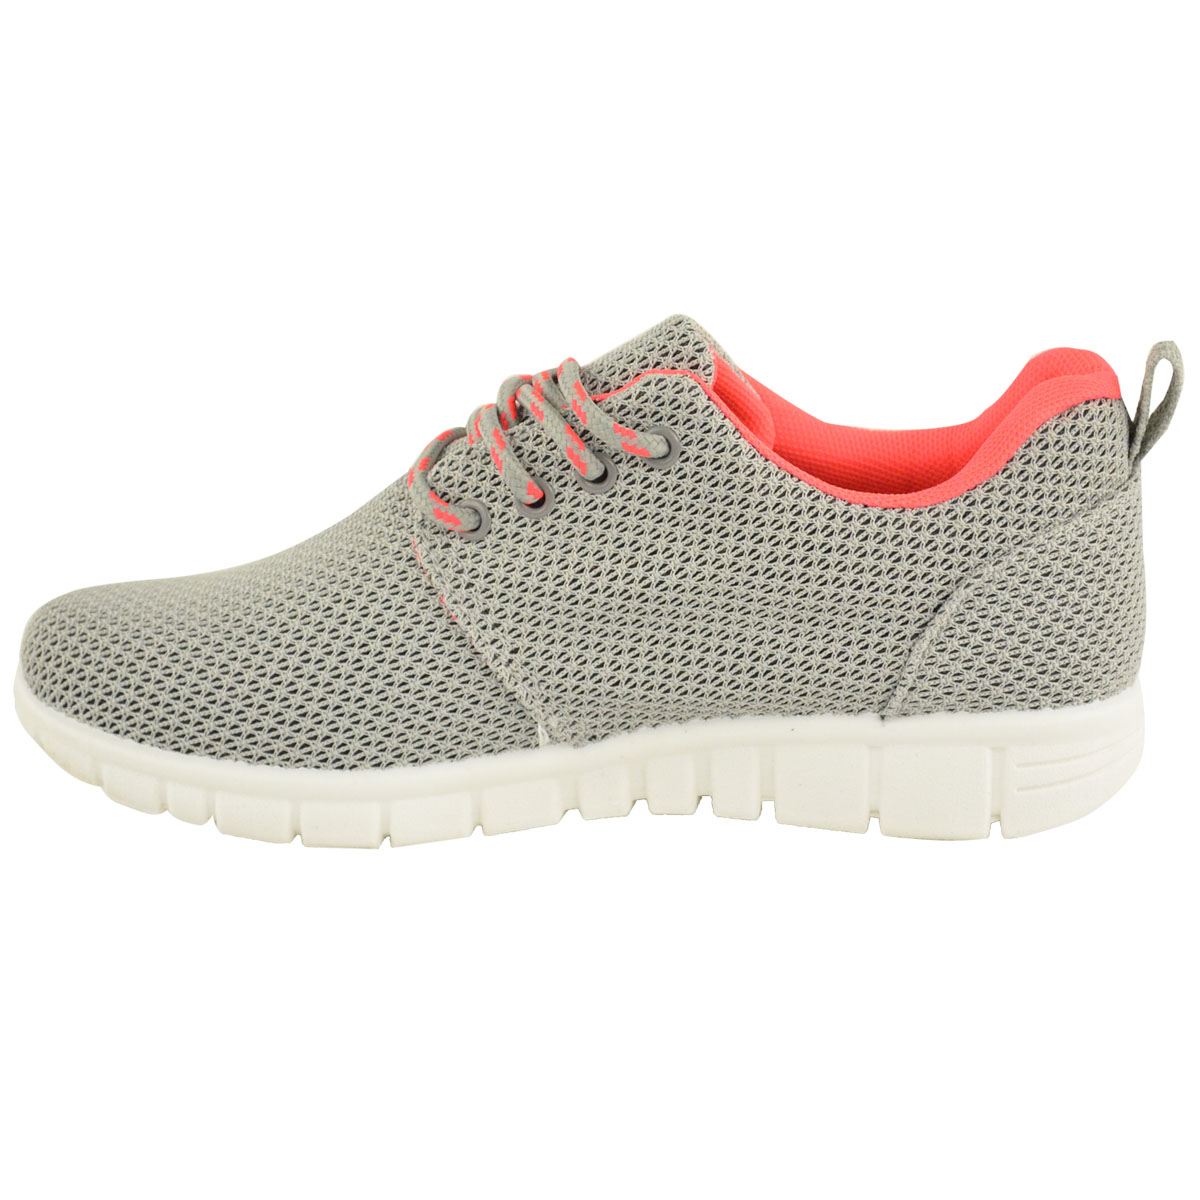 Mesh Womens Sneakers Sale: Save Up to 50% Off! Shop palmmetrf1.ga's huge selection of Mesh Sneakers for Women - Over styles available. FREE Shipping & Exchanges, and a .